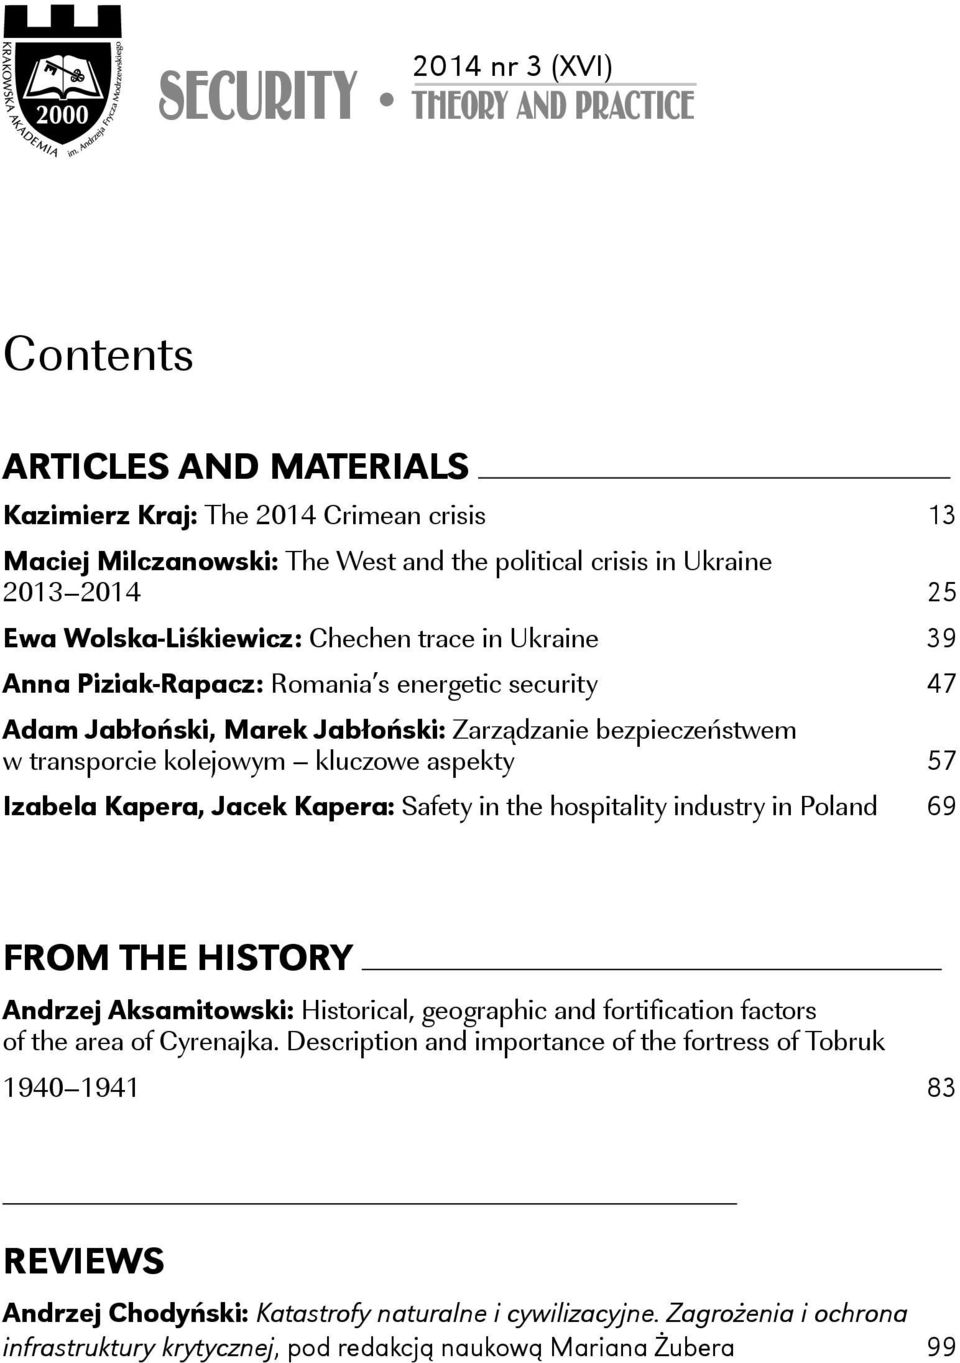 melbourne hospitality industry report pdf